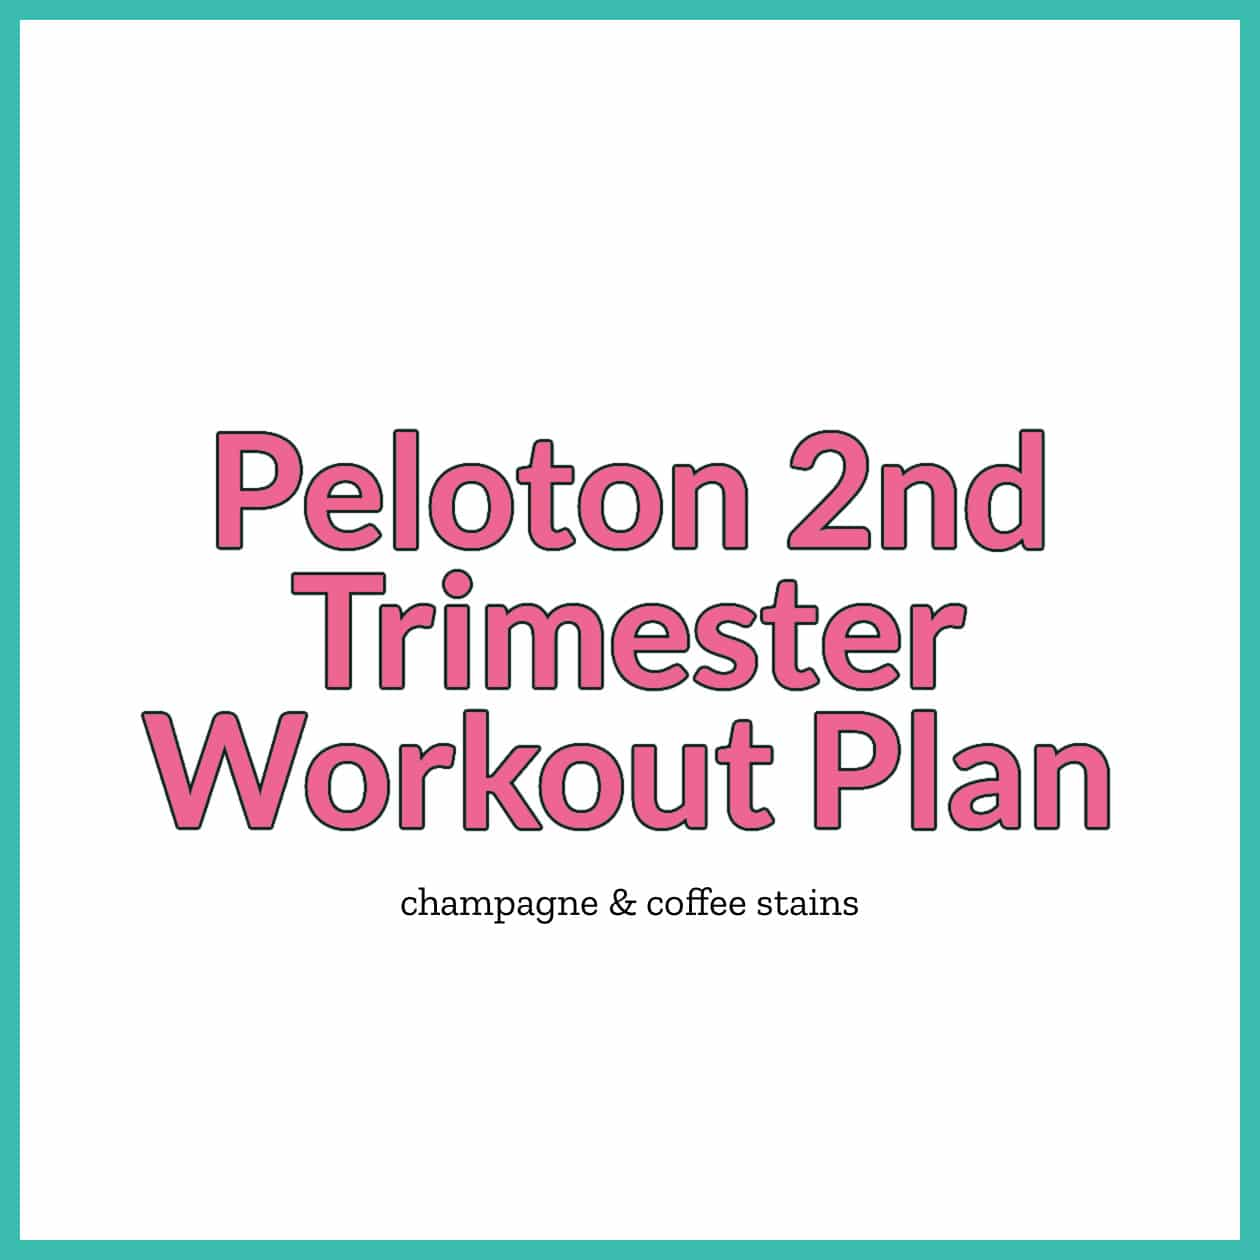 peloton 2nd trimester workout blog image